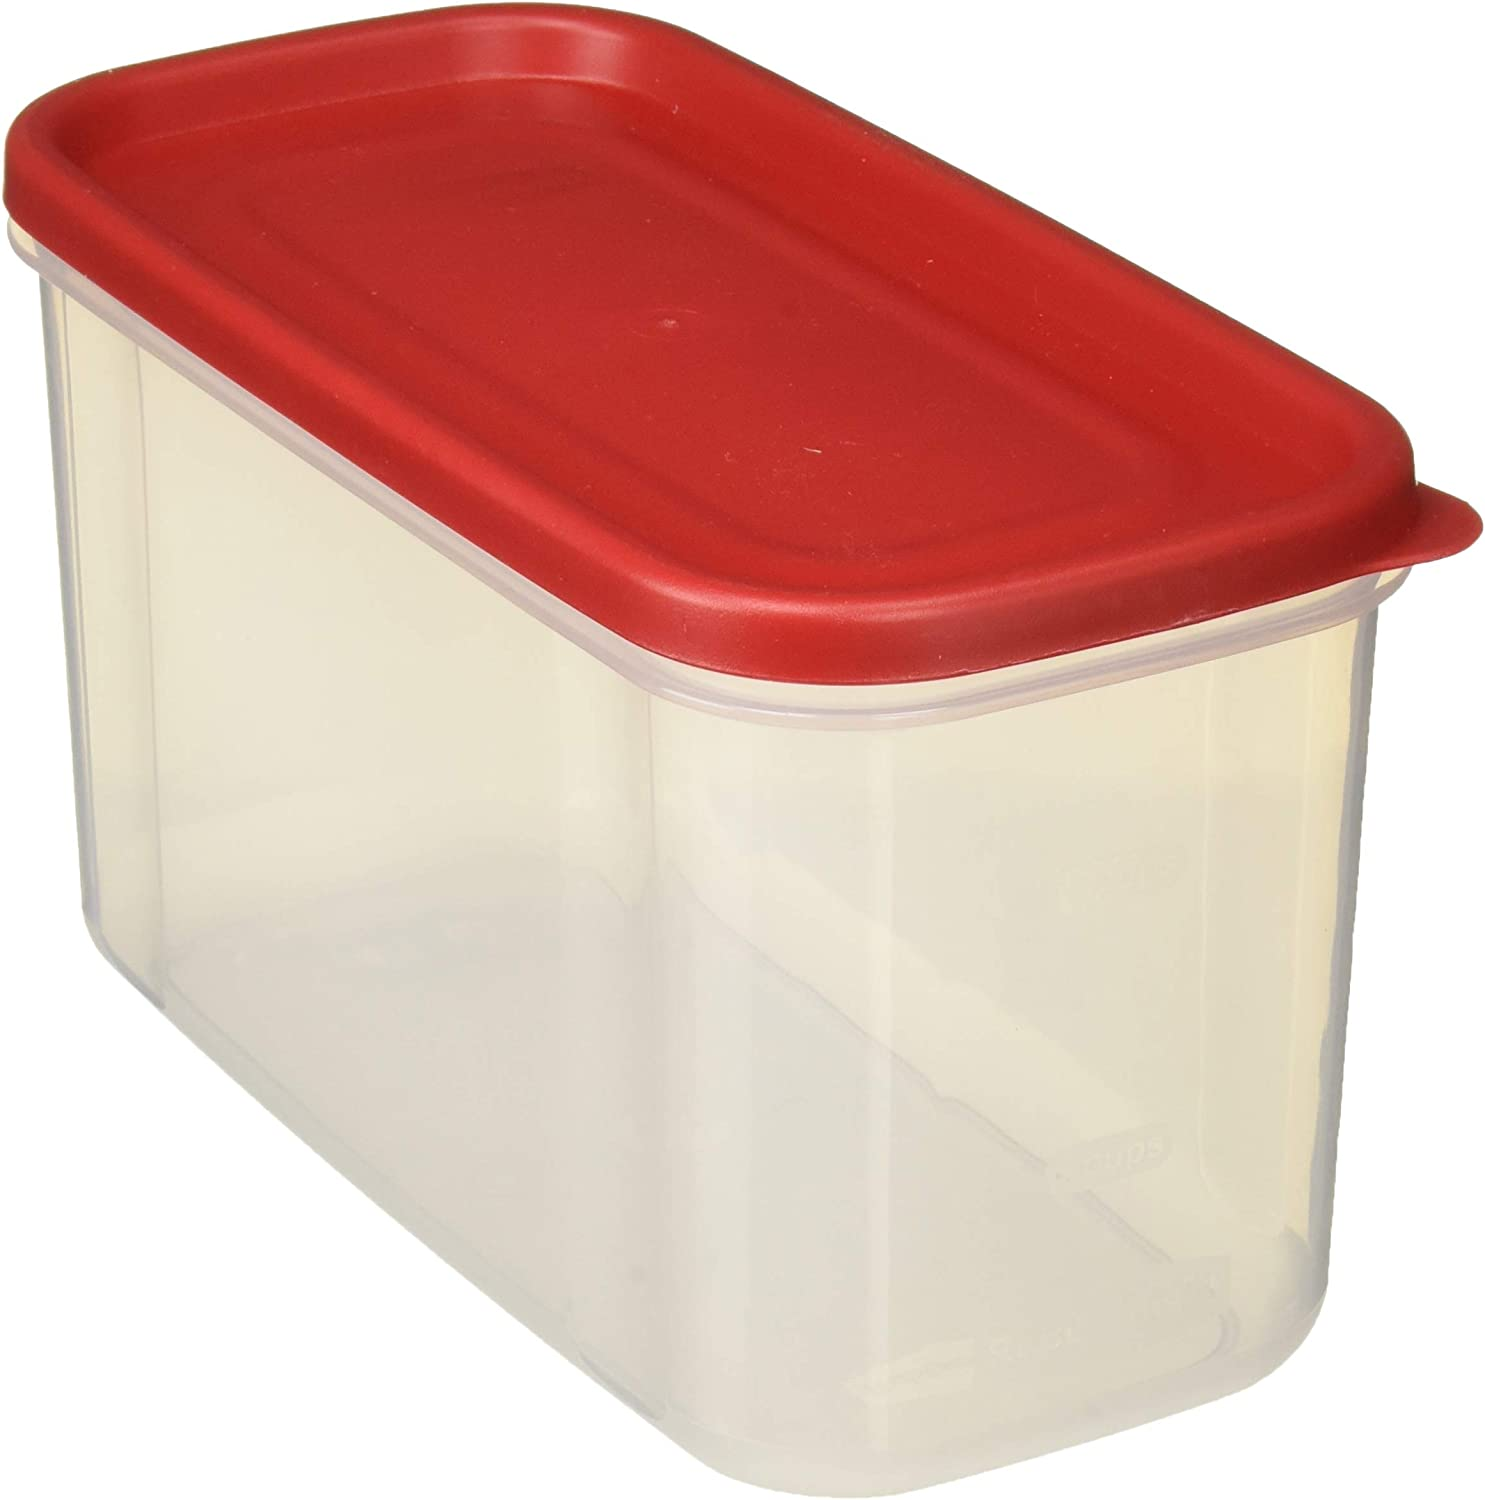 Rubbermaid 711717430423 10-Cup Dry Food Container (Set of 2), 1, Clear